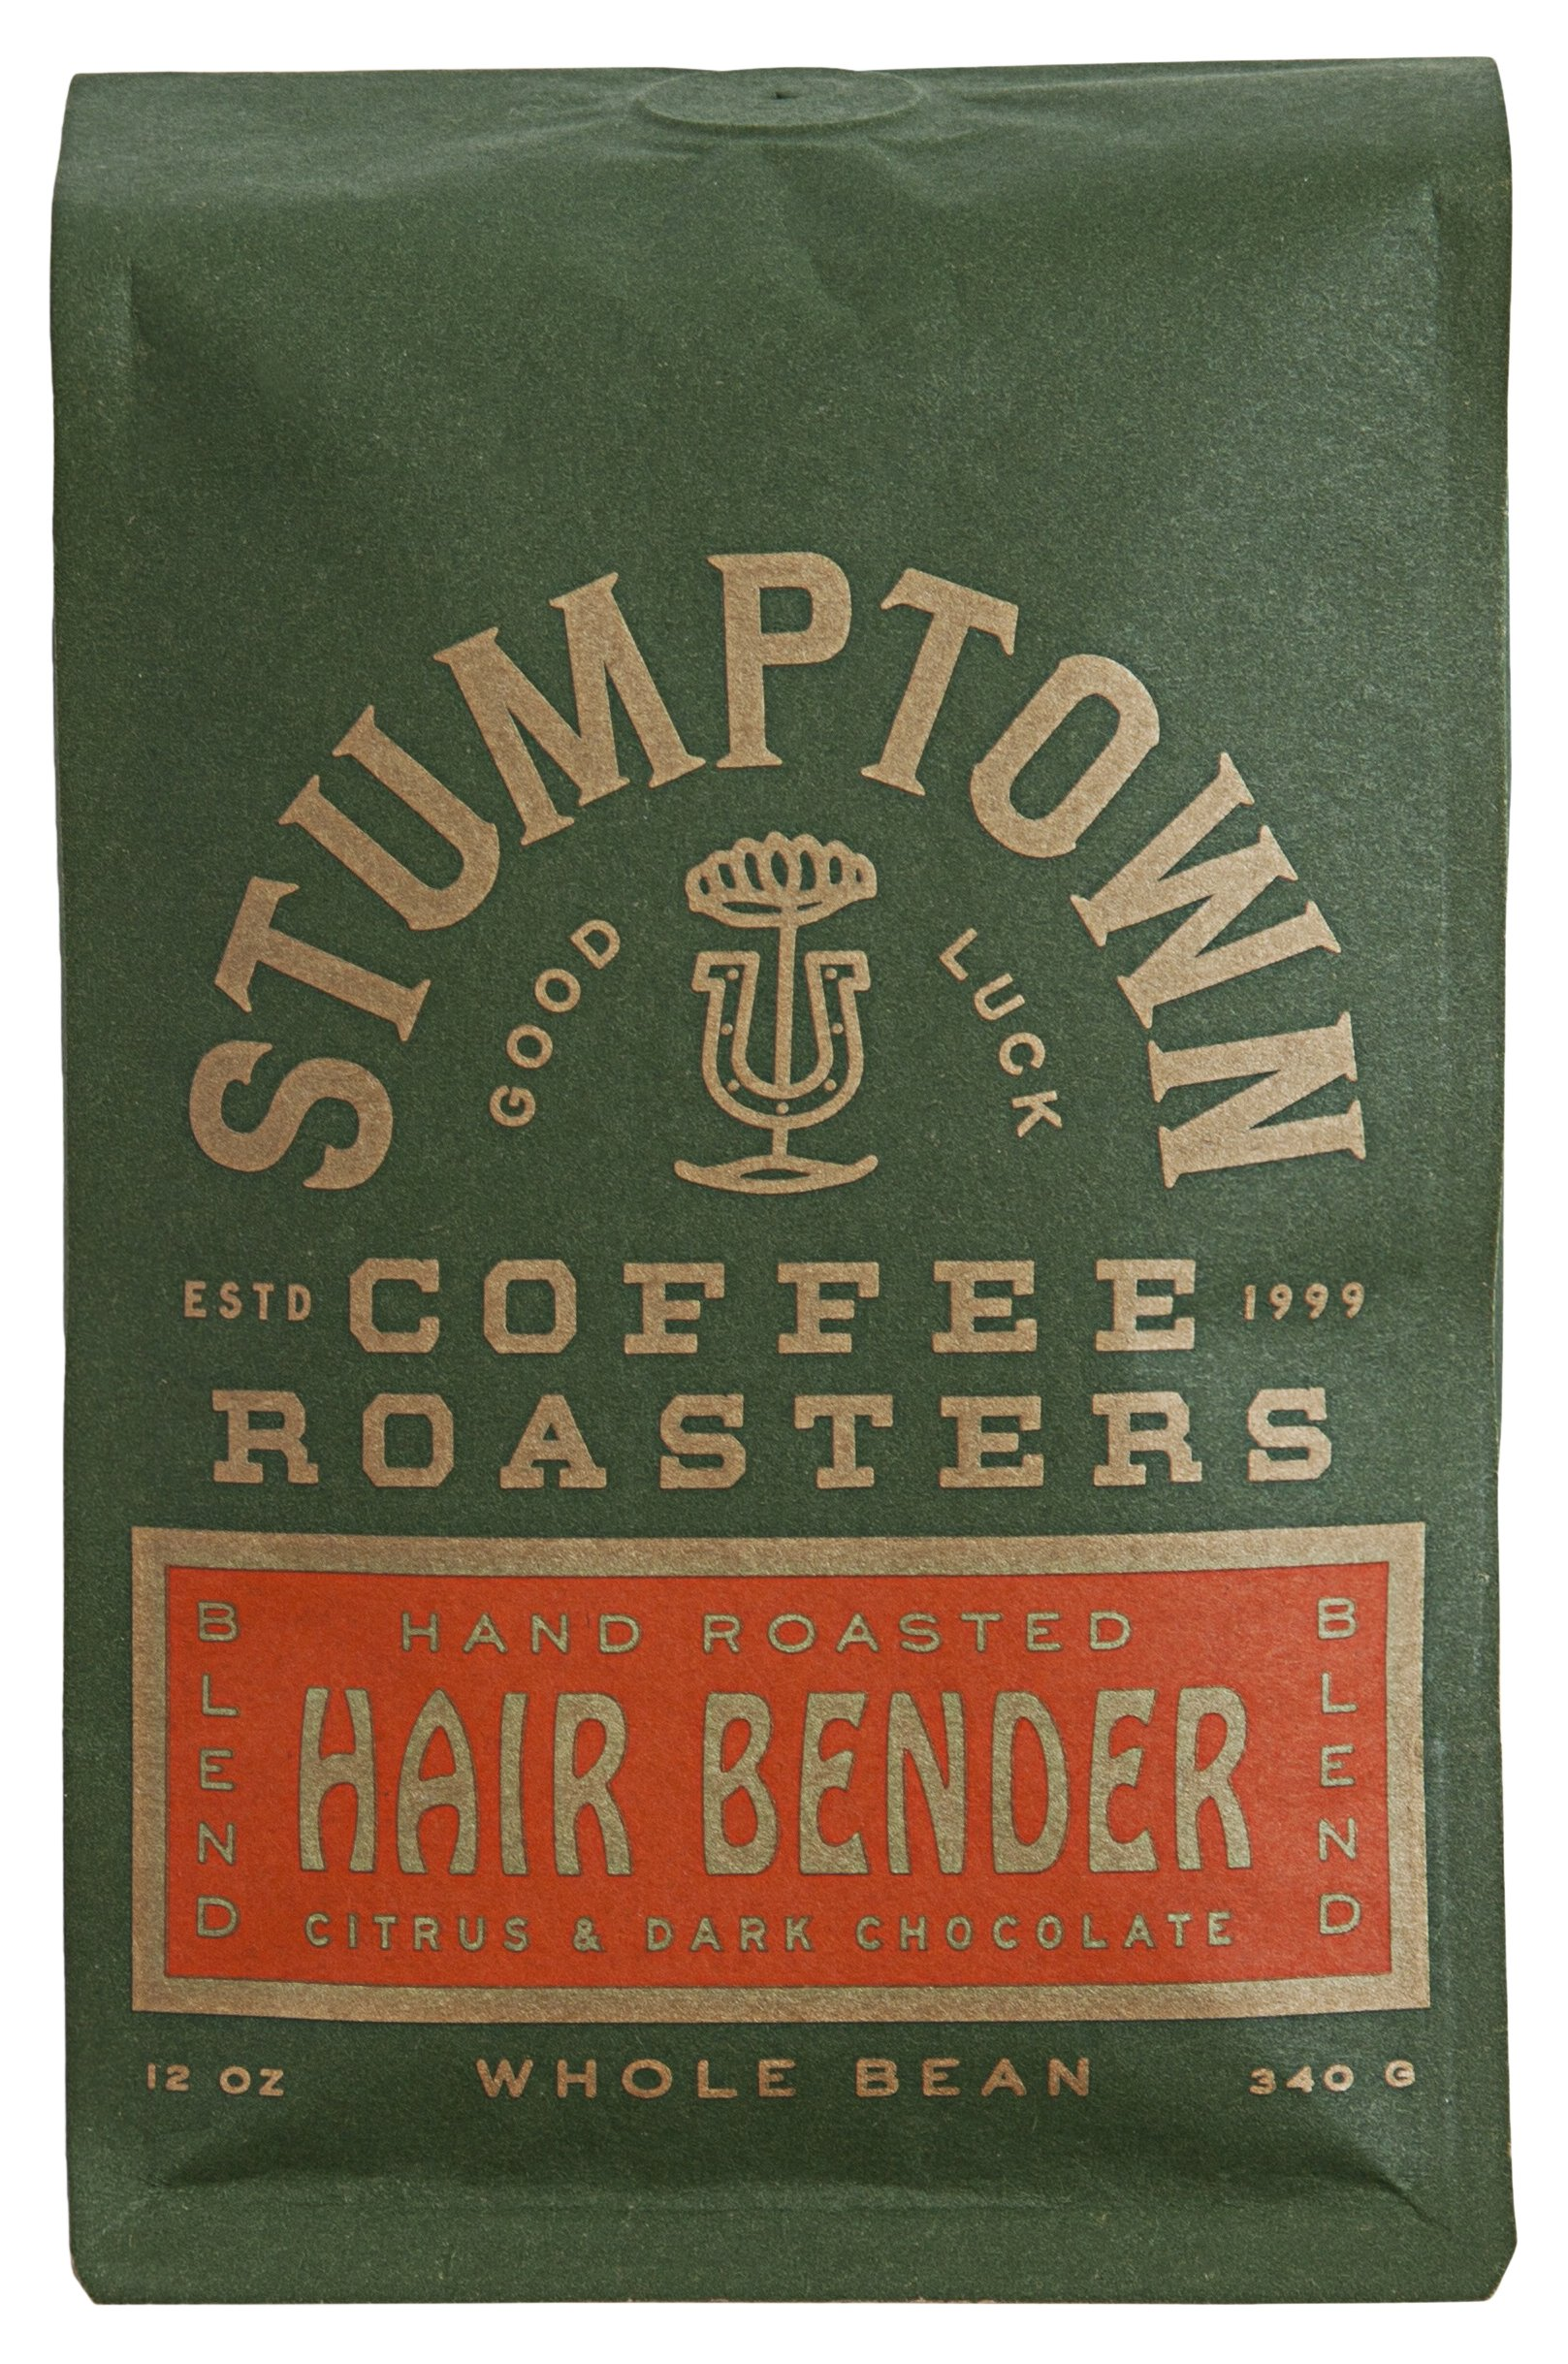 Stumptown Coffee Roasters Whole Bean Coffee, Hairbender, 12 Ounce. Sweet and Balanced Espresso, Indonesian Latin American African Coffee Blend, Perfect for Espresso, Drip or French Press Brewing by Stumptown Coffee